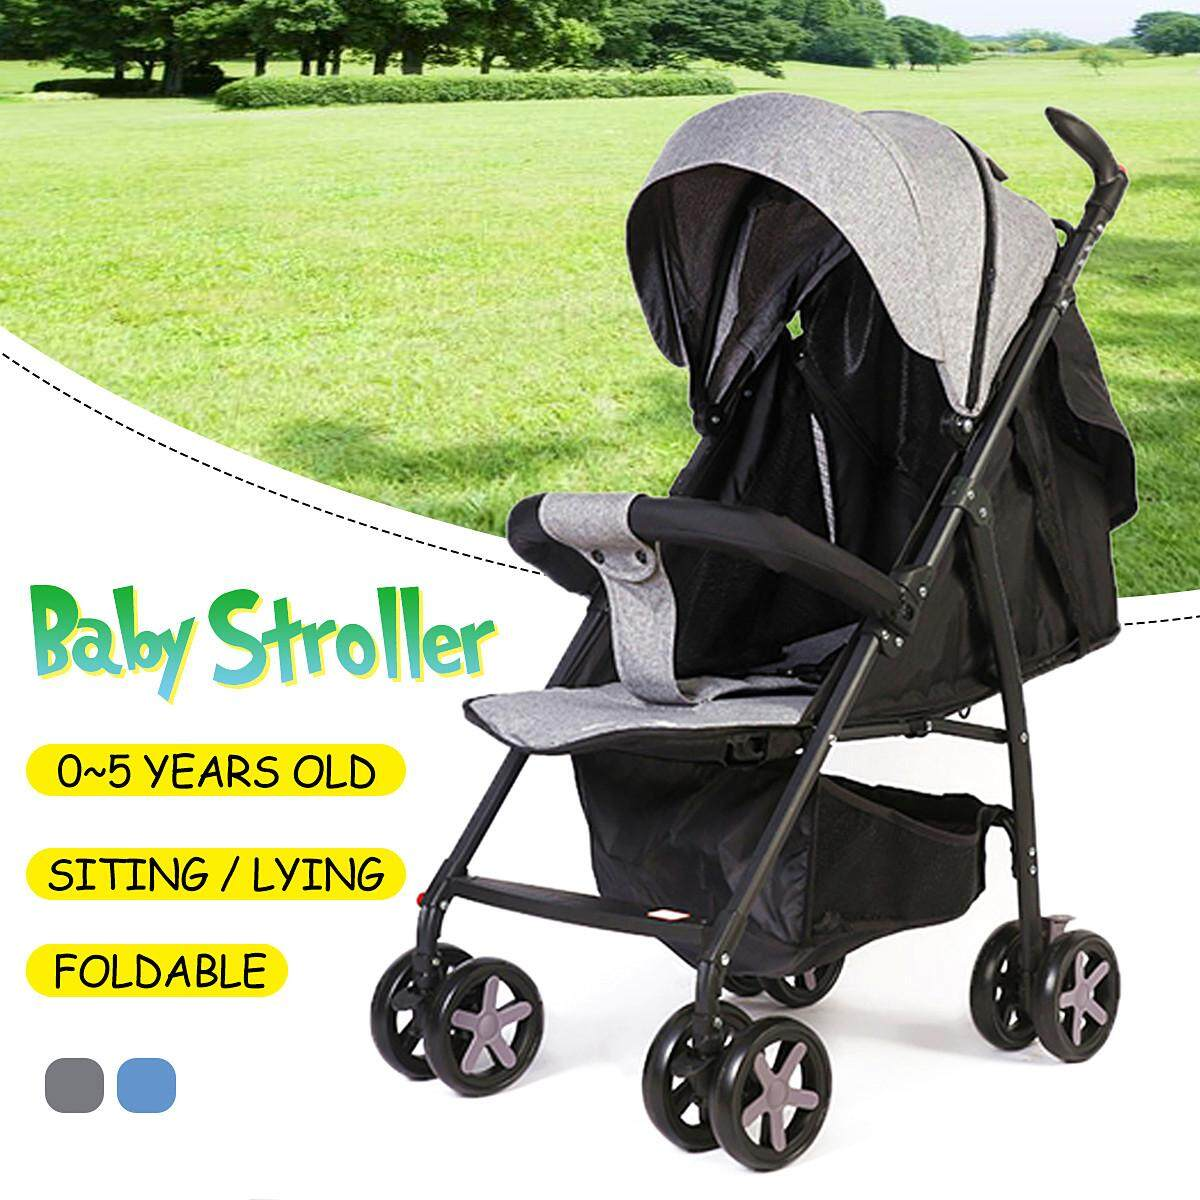 Lightweight Folding Pram Foldable Lightweight Baby Stroller Pram Kids Pushchair Travel Carry On Plane Singapore